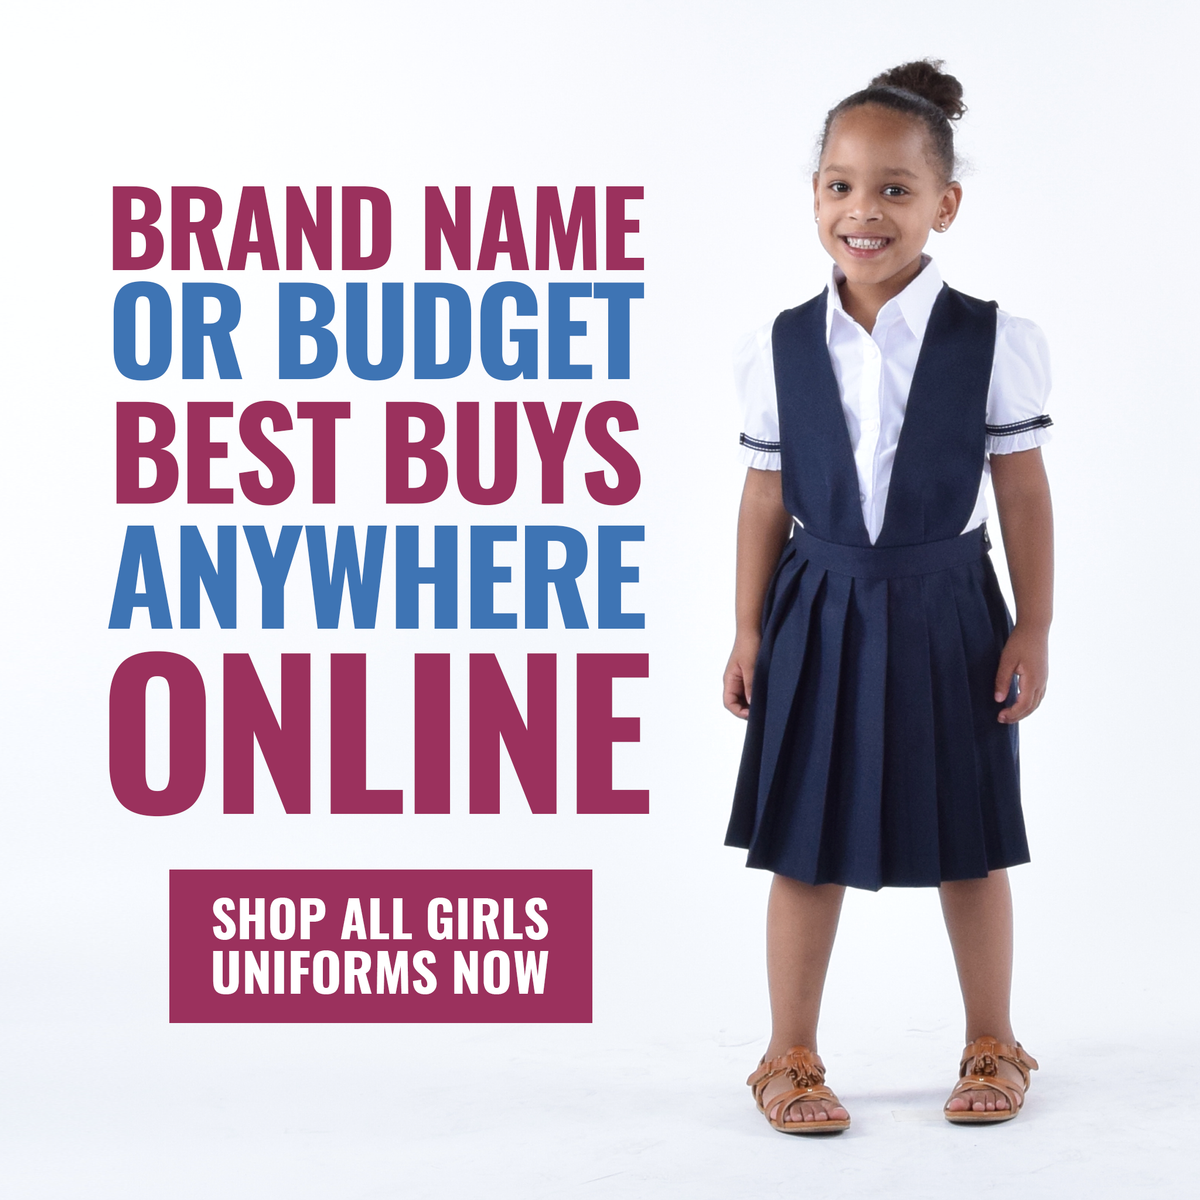 Uniforms Kids For Less